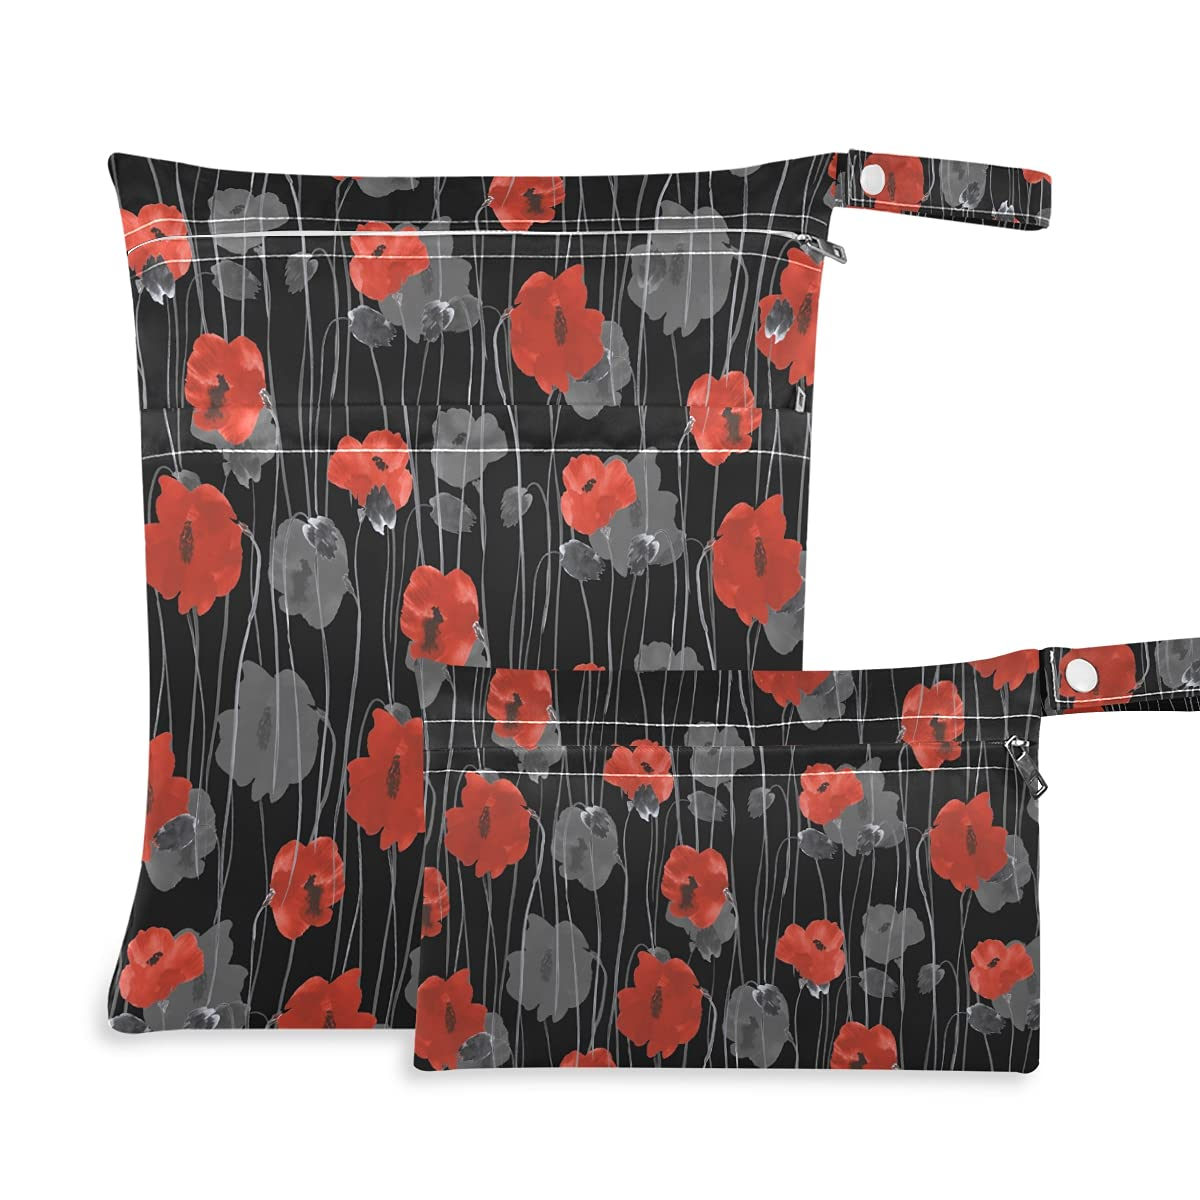 Red and Gray Flowers of Poppies Wet Reusable Dry Diaper Bag Washington Mall Max 87% OFF